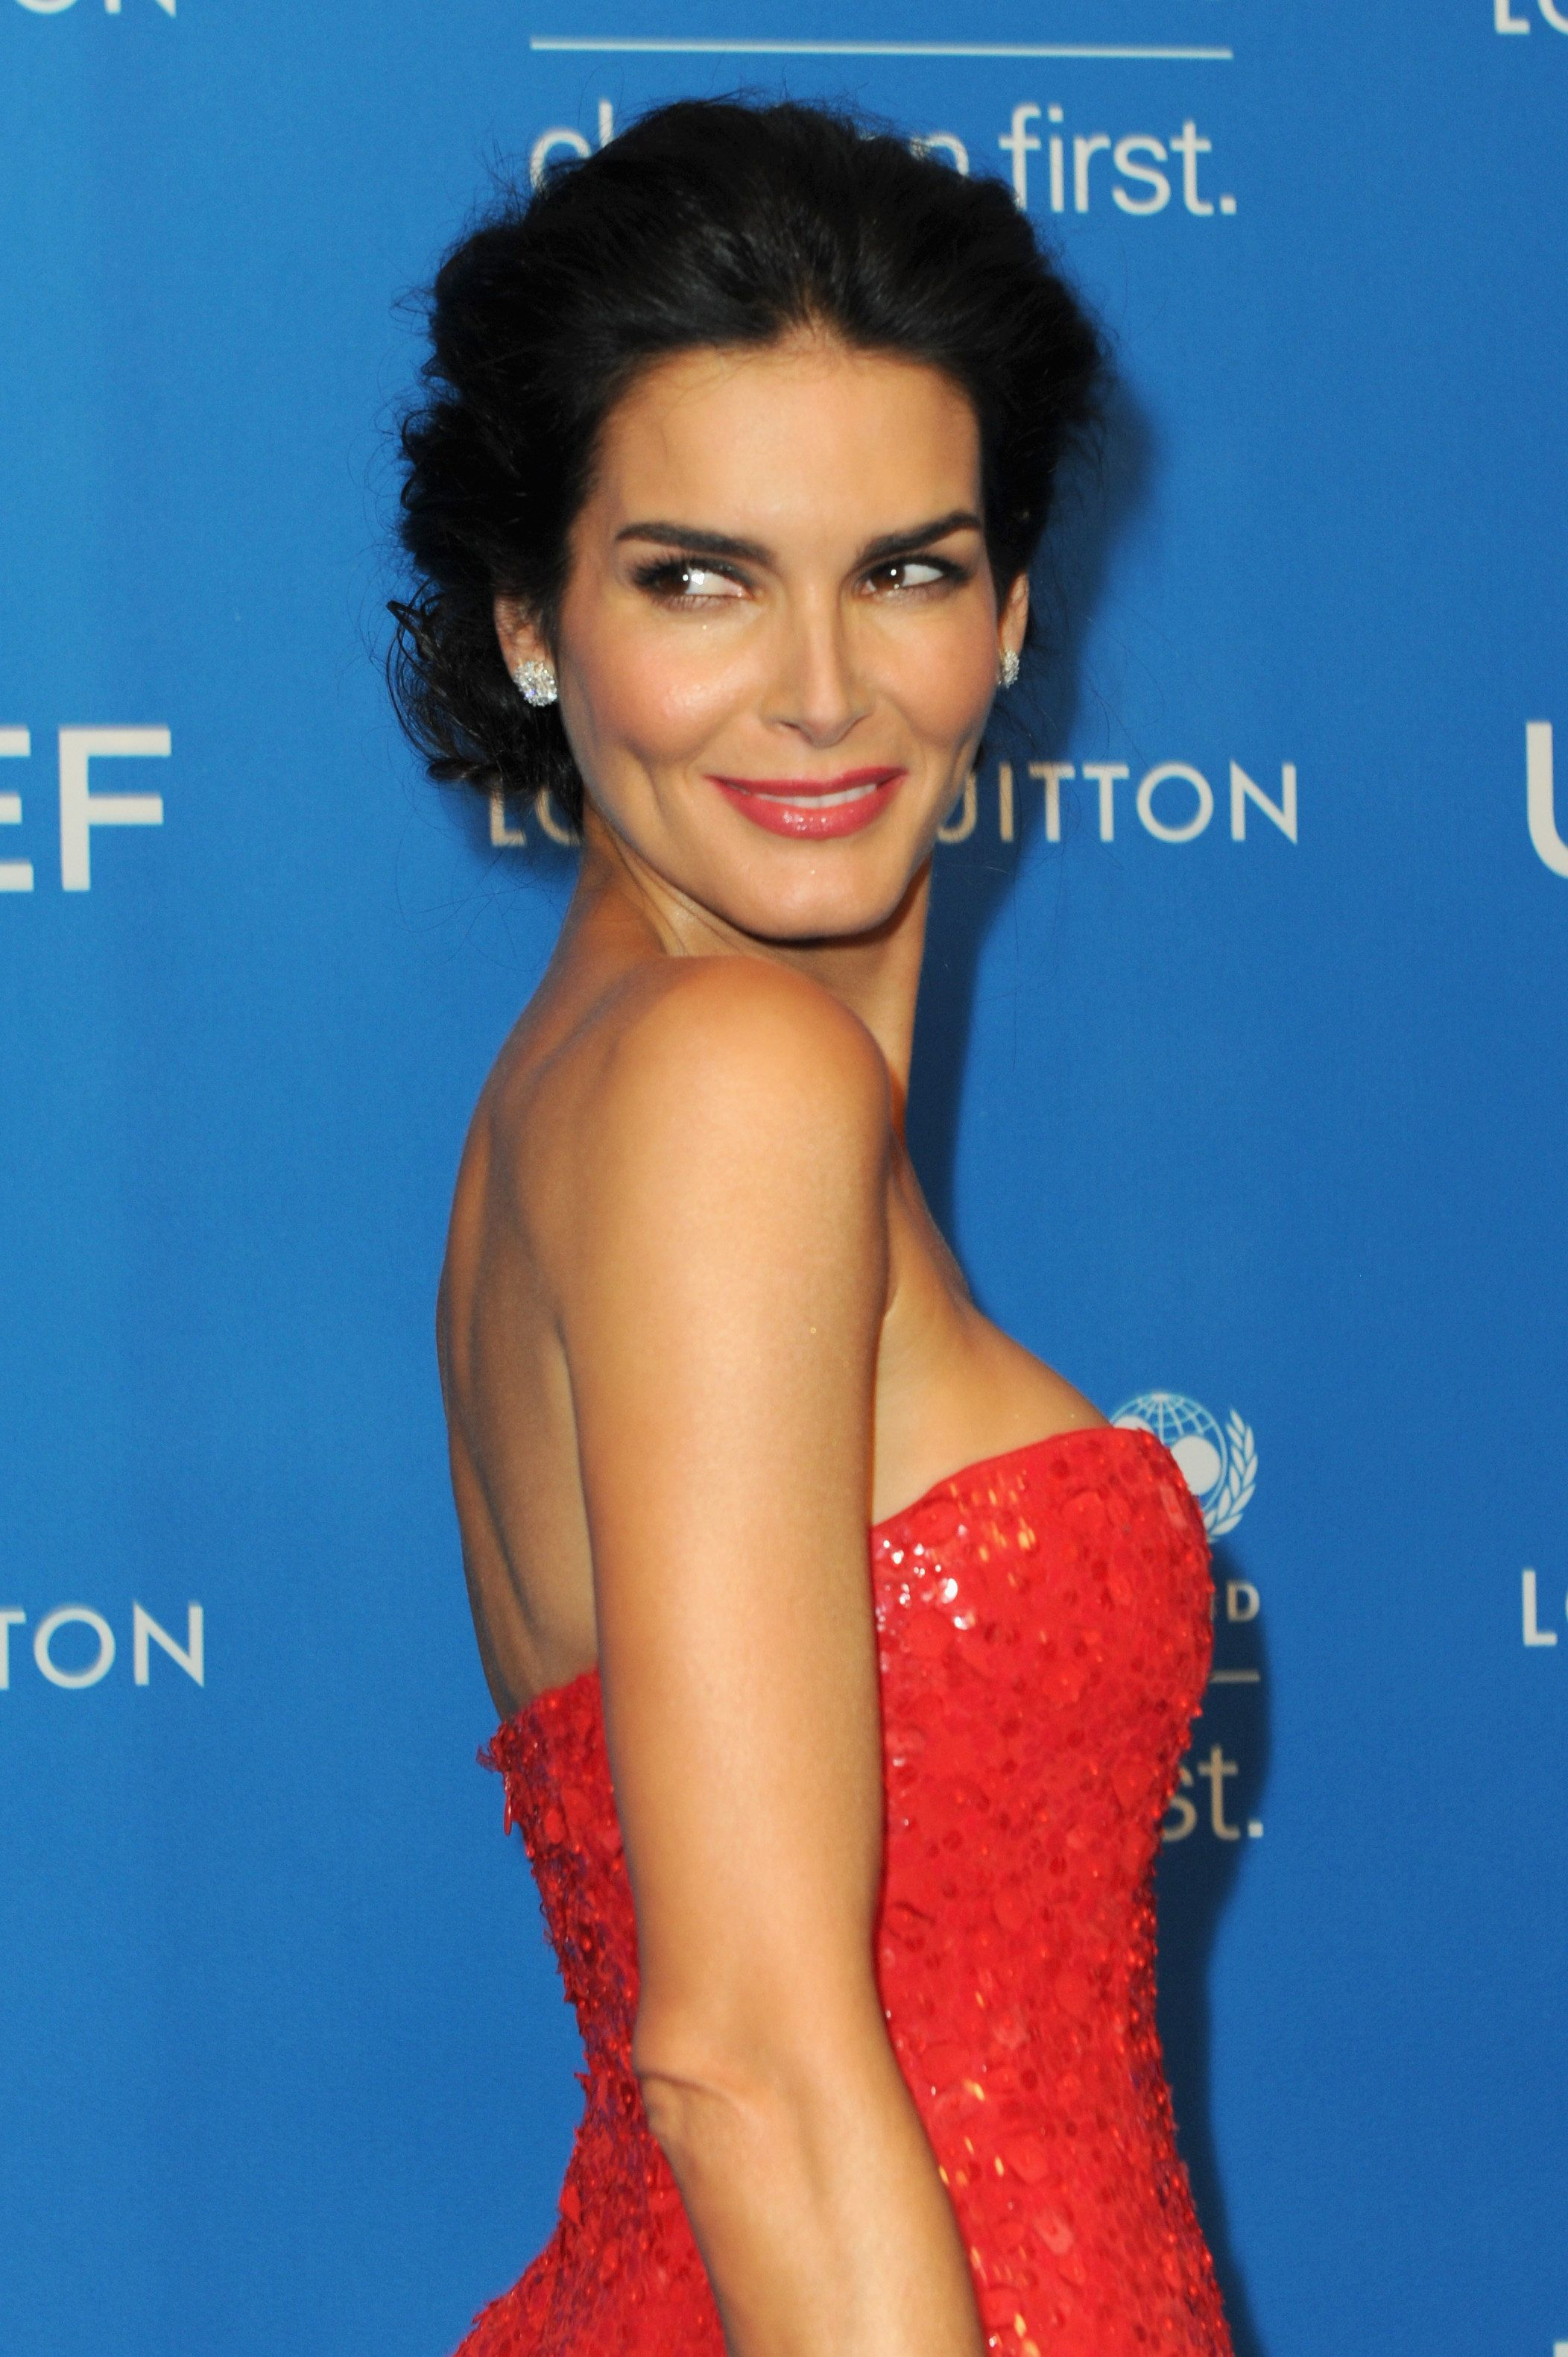 BEVERLY HILLS, CA - JANUARY 12:  Actress Angie Harmon attends the 6th Biennial UNICEF Ball at the Beverly Wilshire Four Seasons Hotel on January 12, 2016 in Beverly Hills, California.  (Photo by Joshua Blanchard/Getty Images)